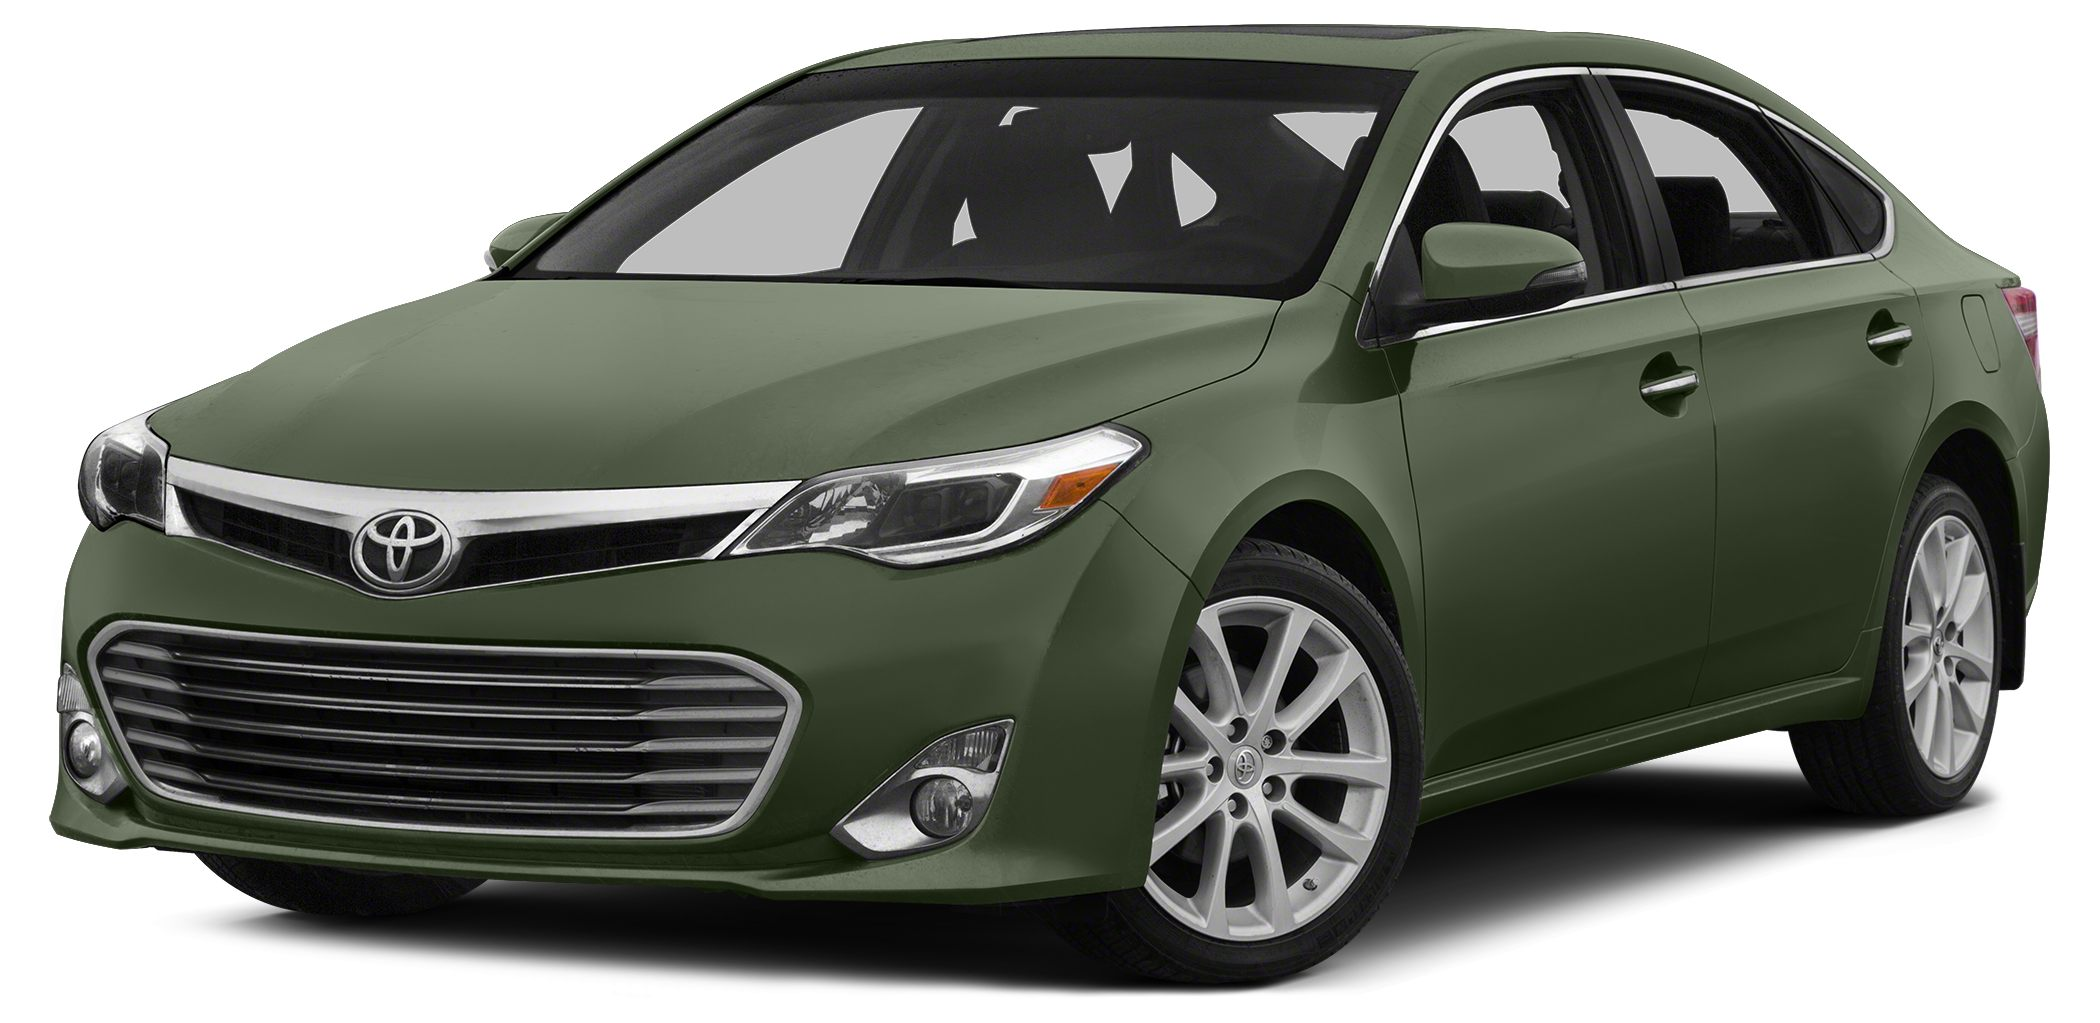 2014 Toyota Avalon XLE Touring GREAT MILES 44925 EPA 31 MPG Hwy21 MPG City PRICED TO MOVE 40